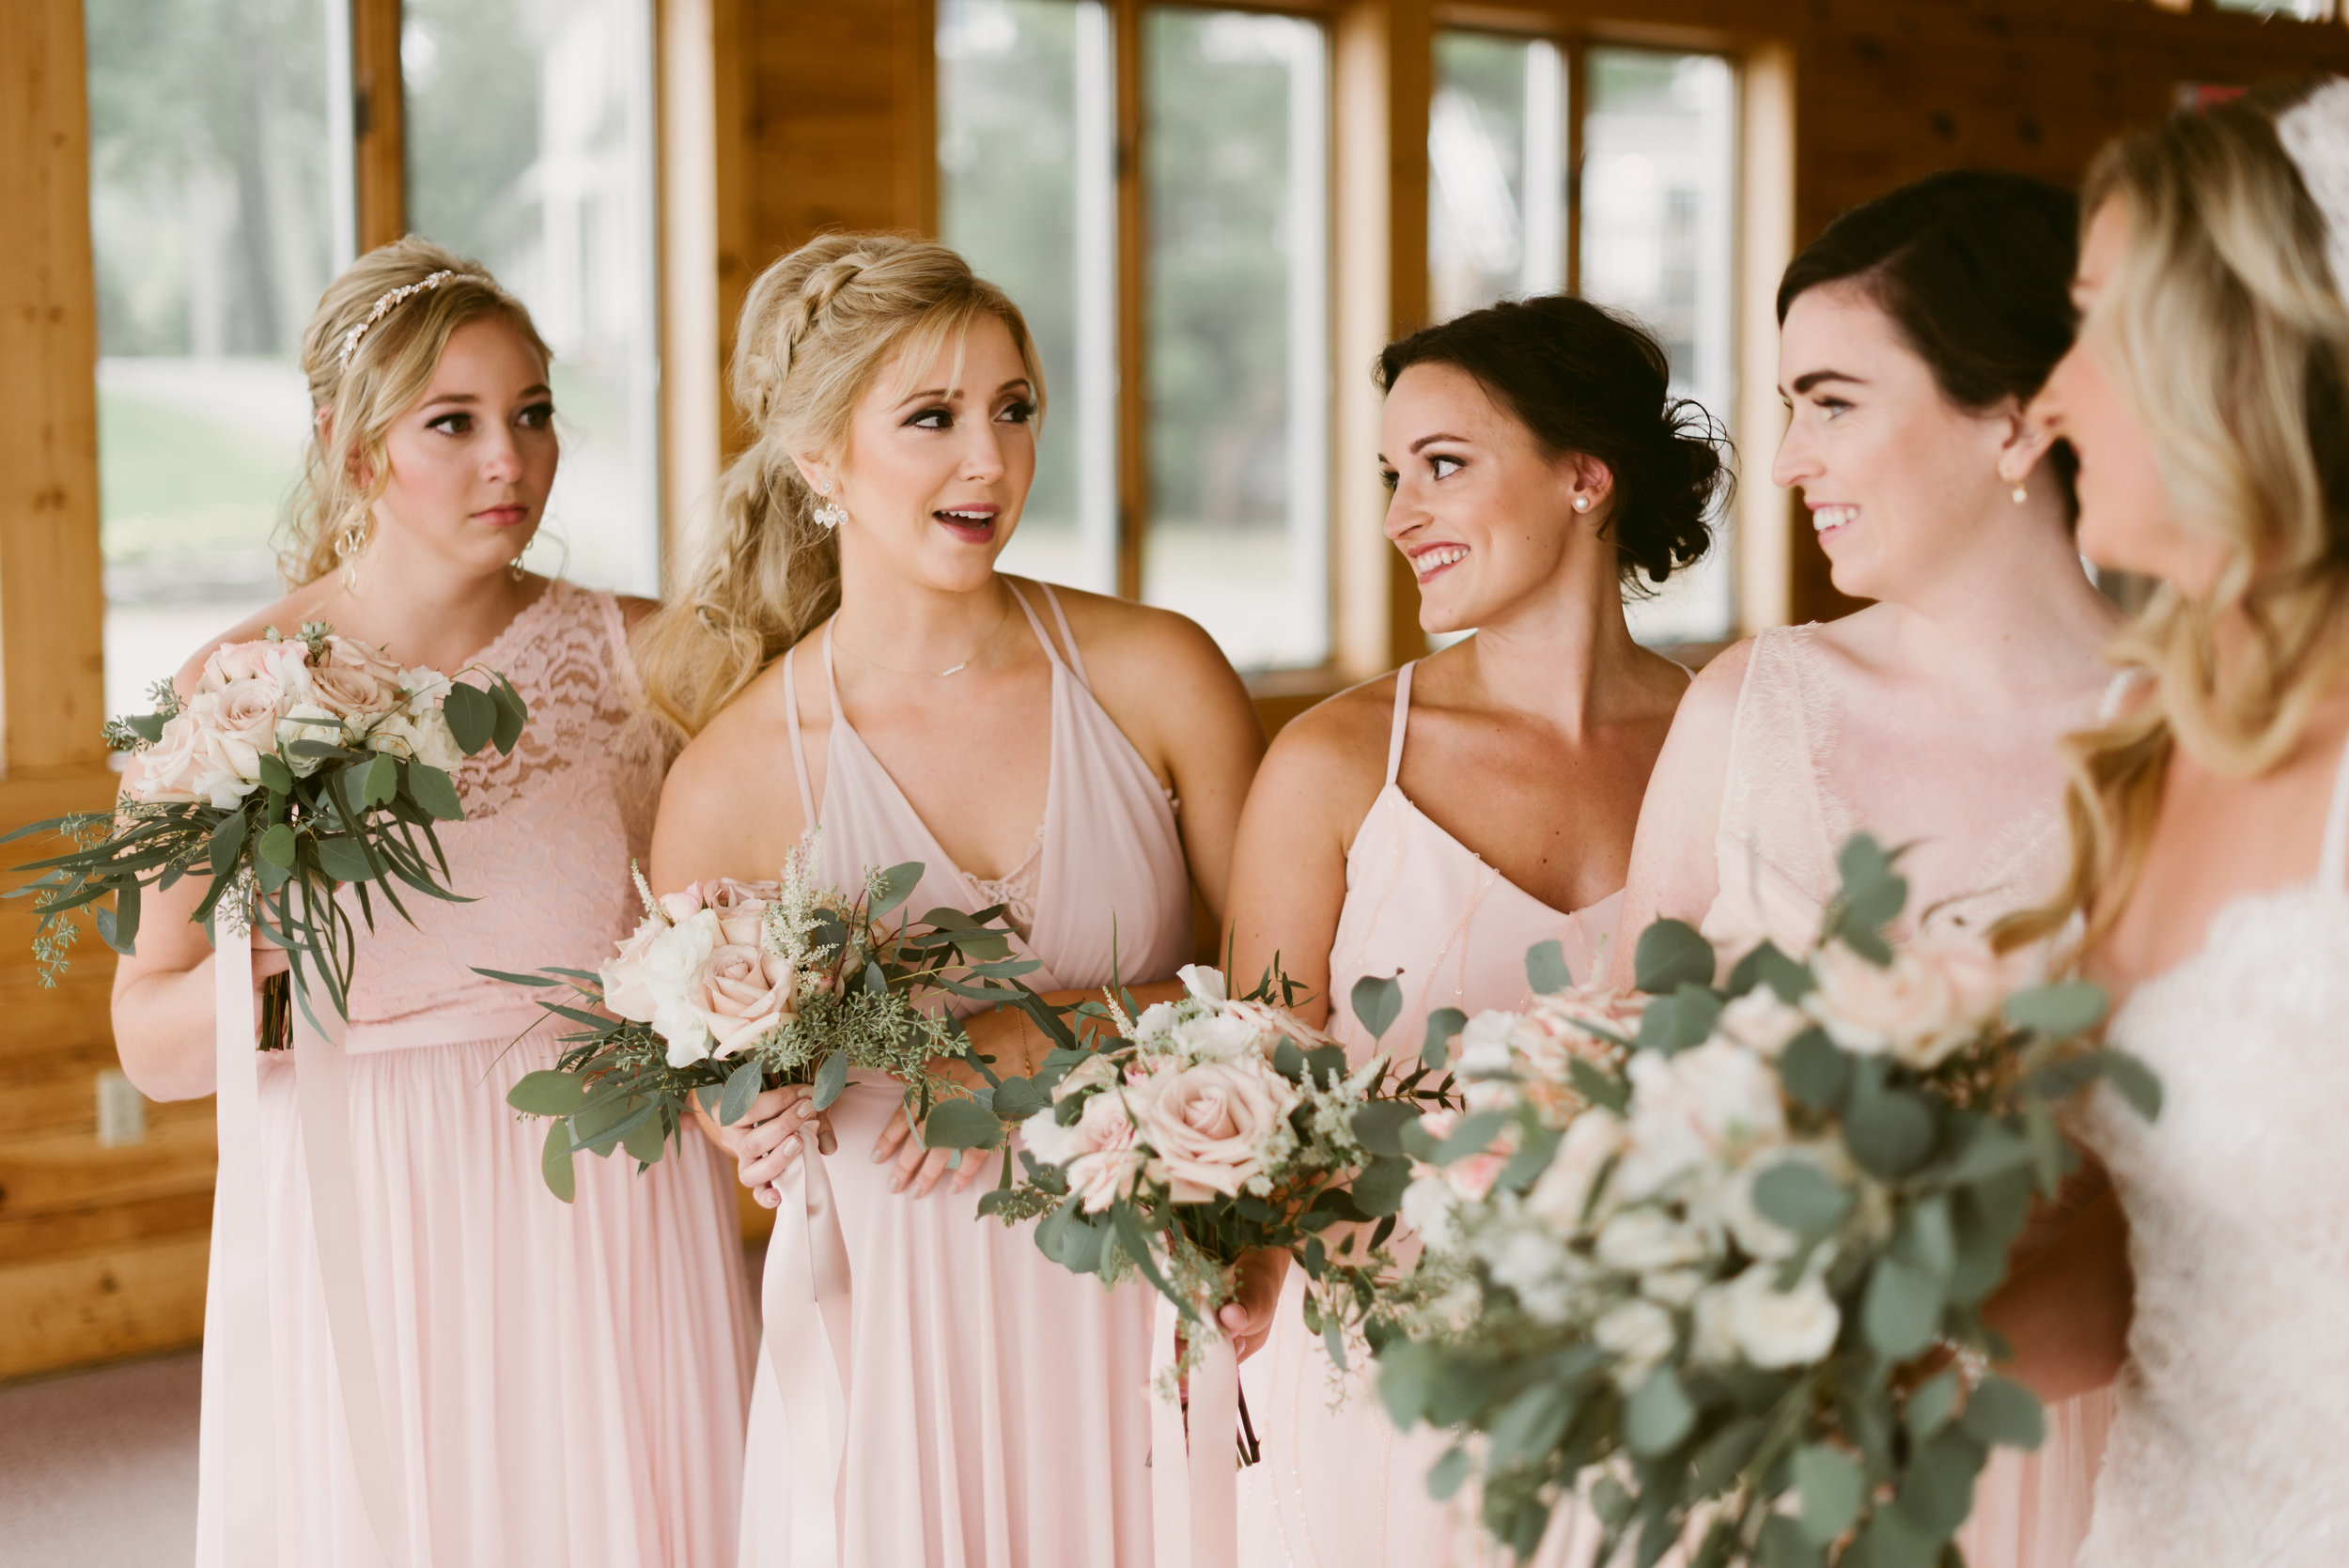 makeup by leah Francesca / hair by Chelsea goodier & jaysie walts of hair creations / photography Mountainaire gatherings / bridal party